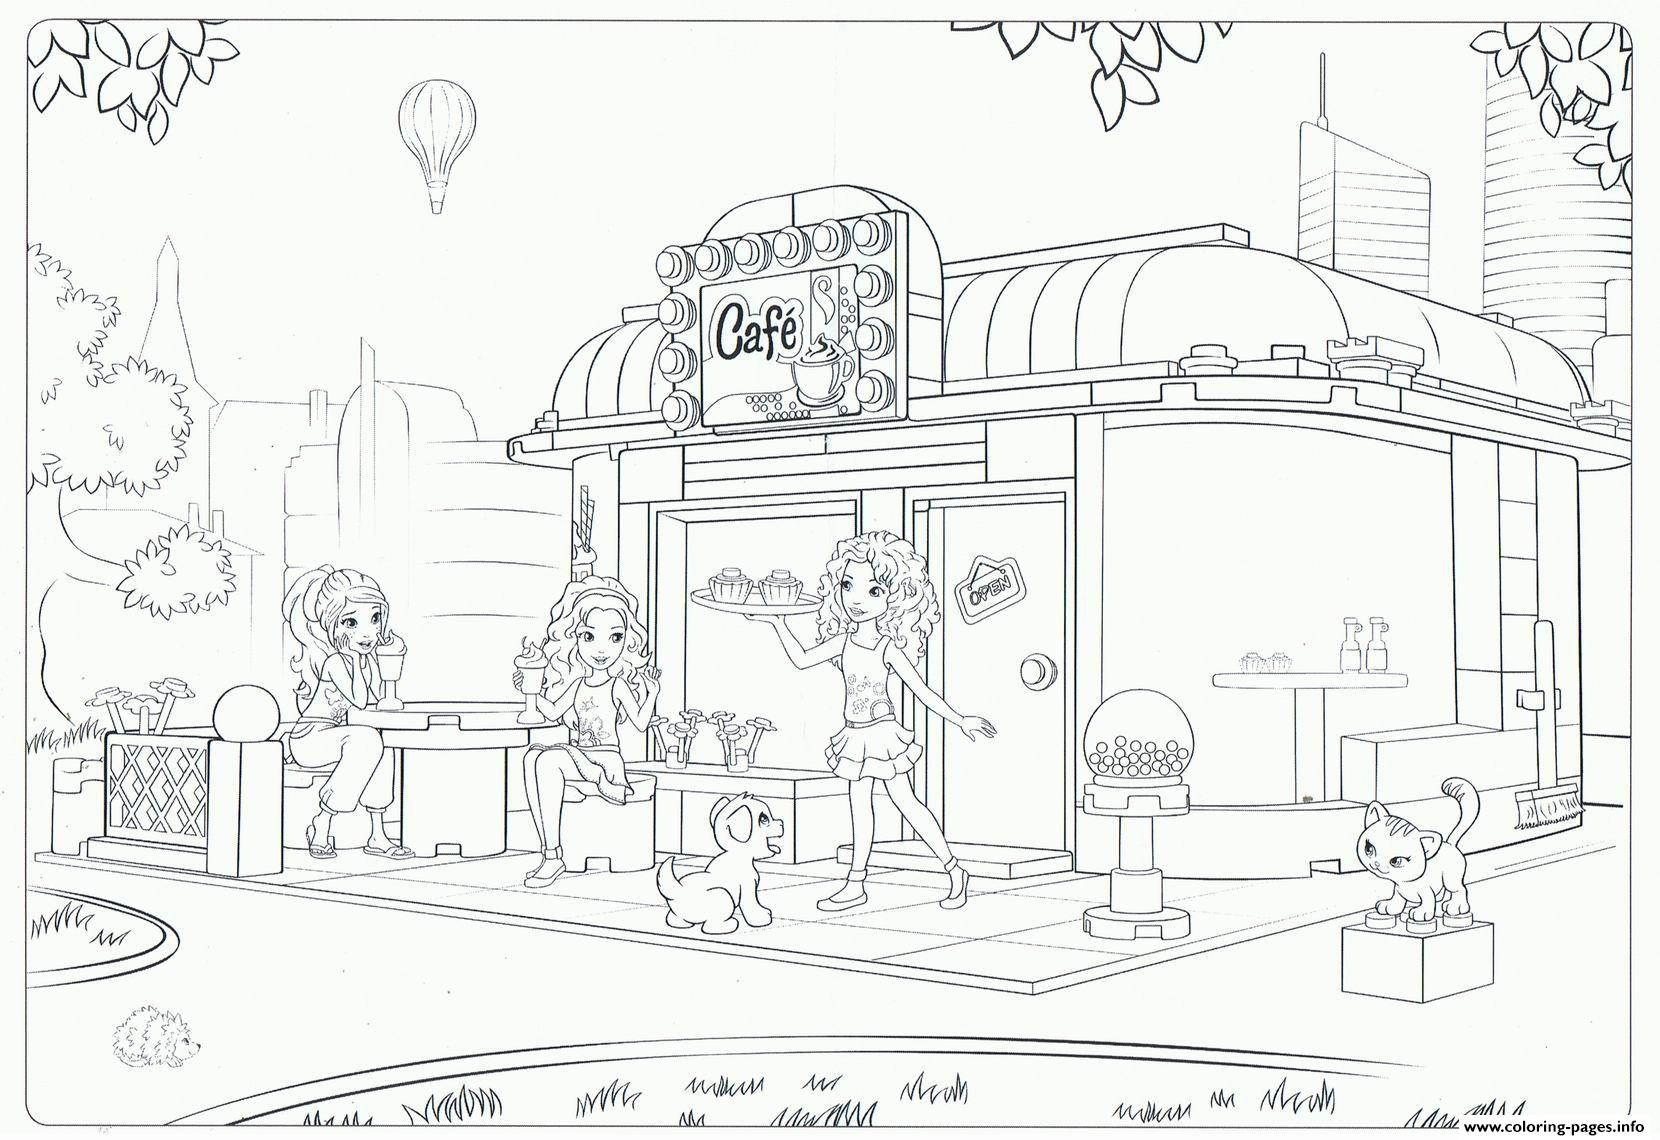 - Lego Friends Cafe Coloring Pages Printable